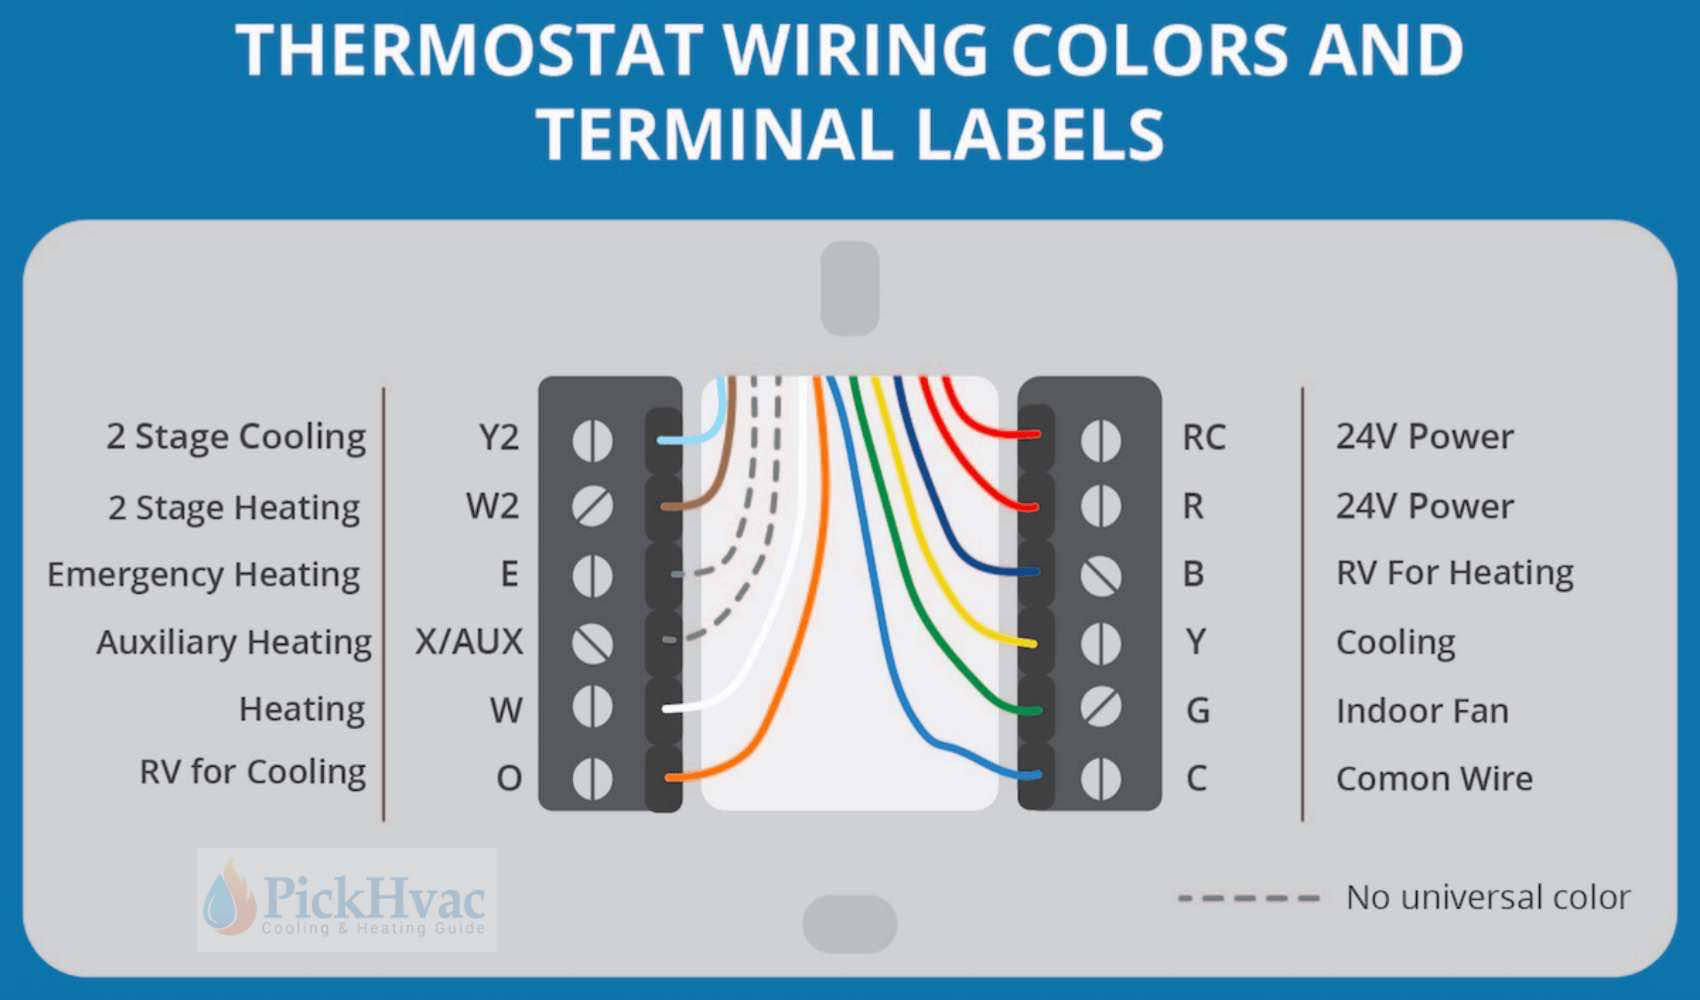 In-Depth Thermostat Wiring Guide For Homeowners - Wiring Diagram For Nest Thermostat Split System